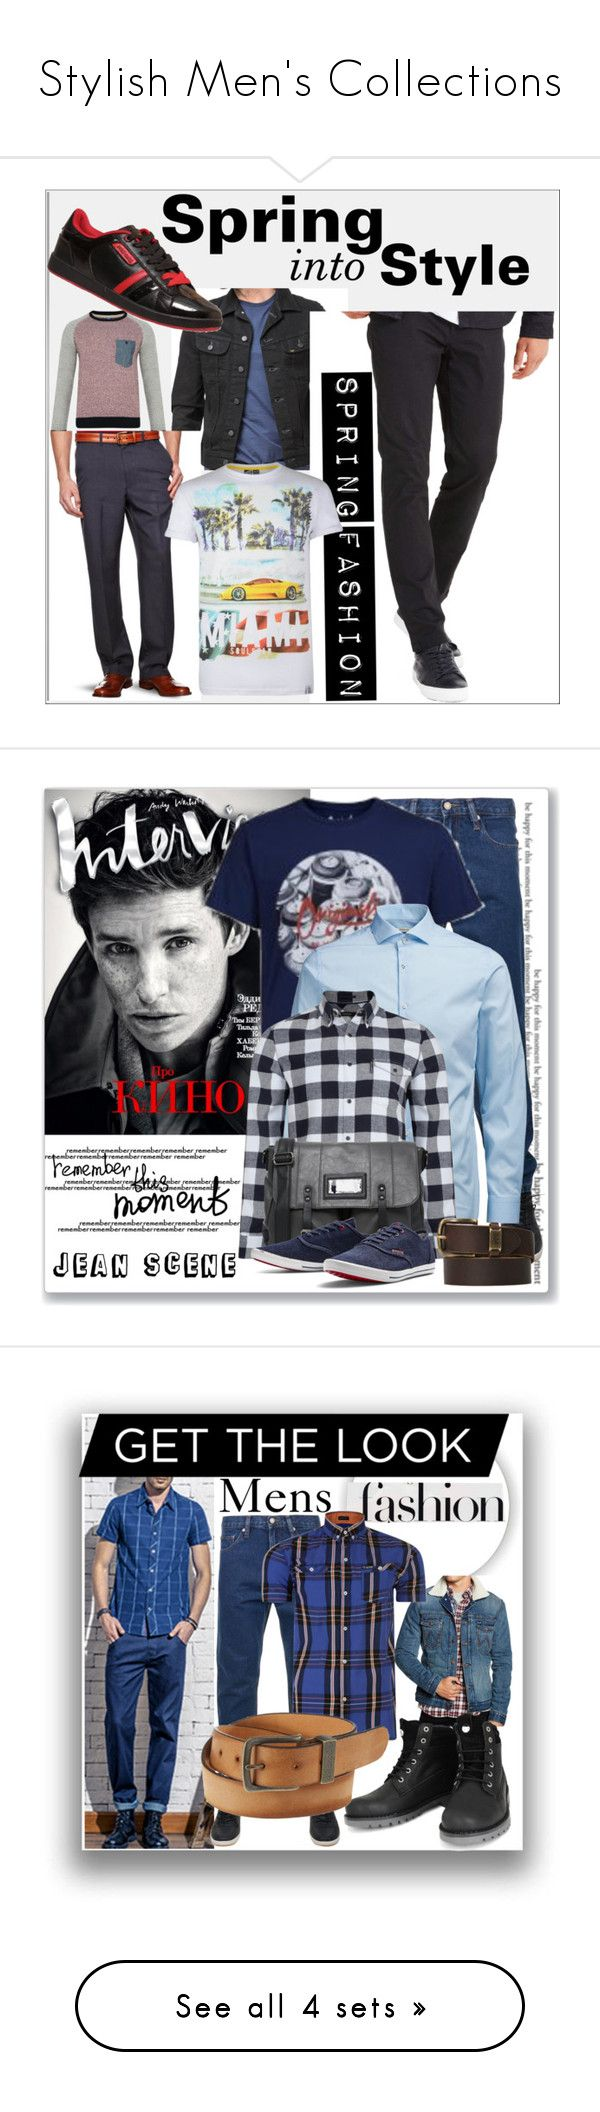 """""""Stylish Men's Collections"""" by jeanscene ❤ liked on Polyvore featuring Ecko Unltd., Jack & Jones, Smith and Jones, Soul Star, men's fashion, menswear, French Connection, Wrangler, Firetrap and Boots"""